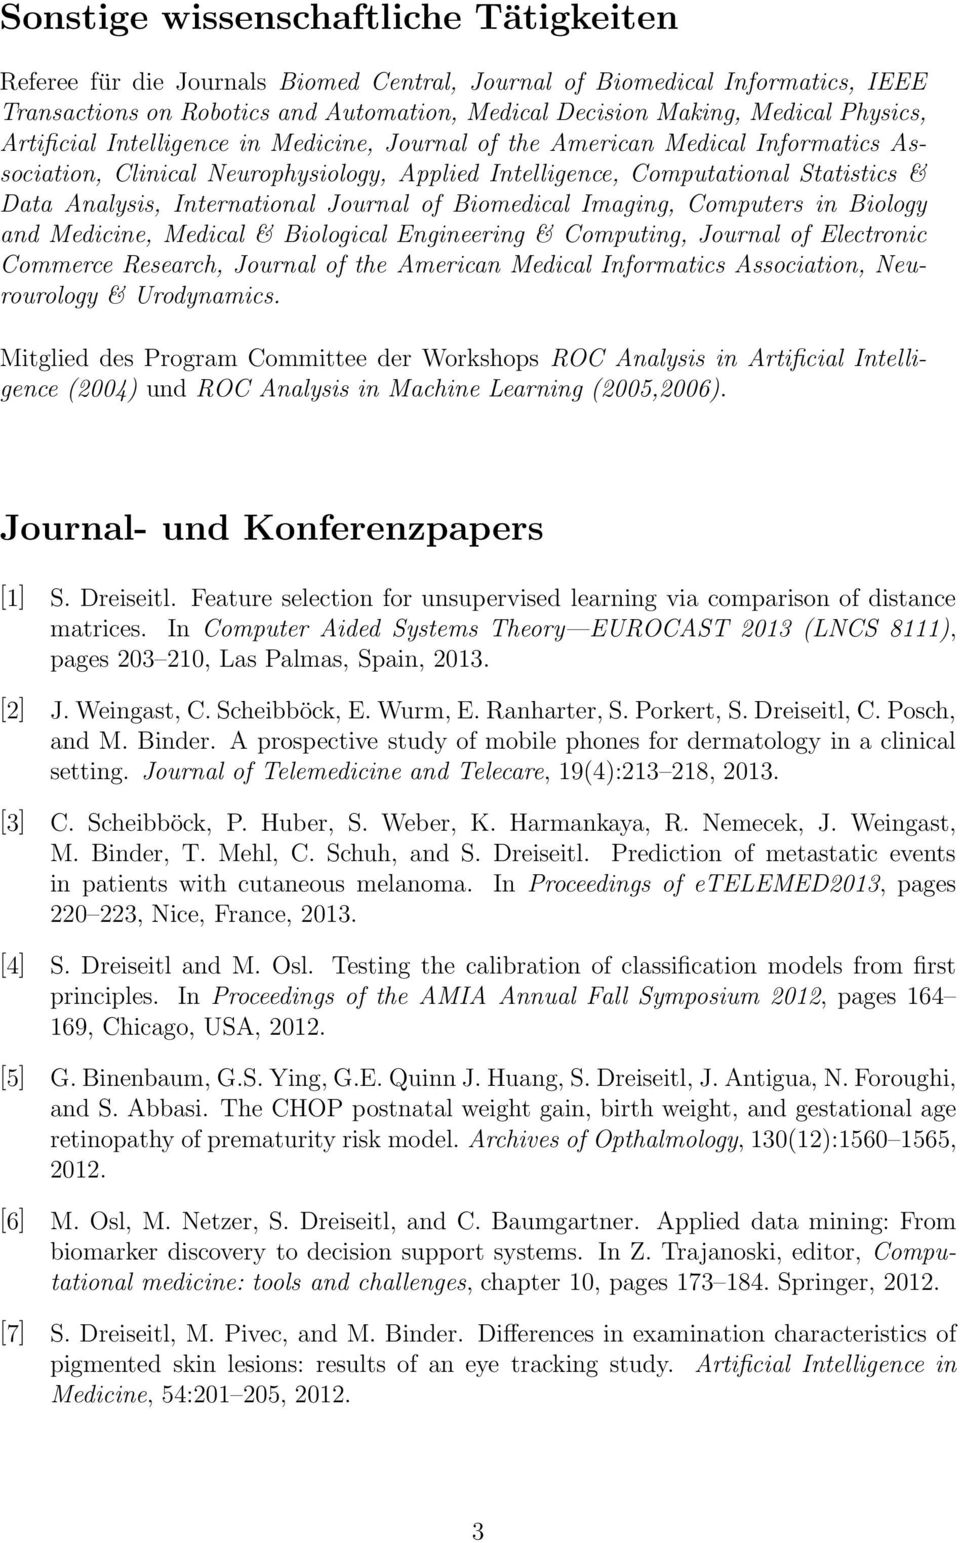 International Journal of Biomedical Imaging, Computers in Biology and Medicine, Medical & Biological Engineering & Computing, Journal of Electronic Commerce Research, Journal of the American Medical